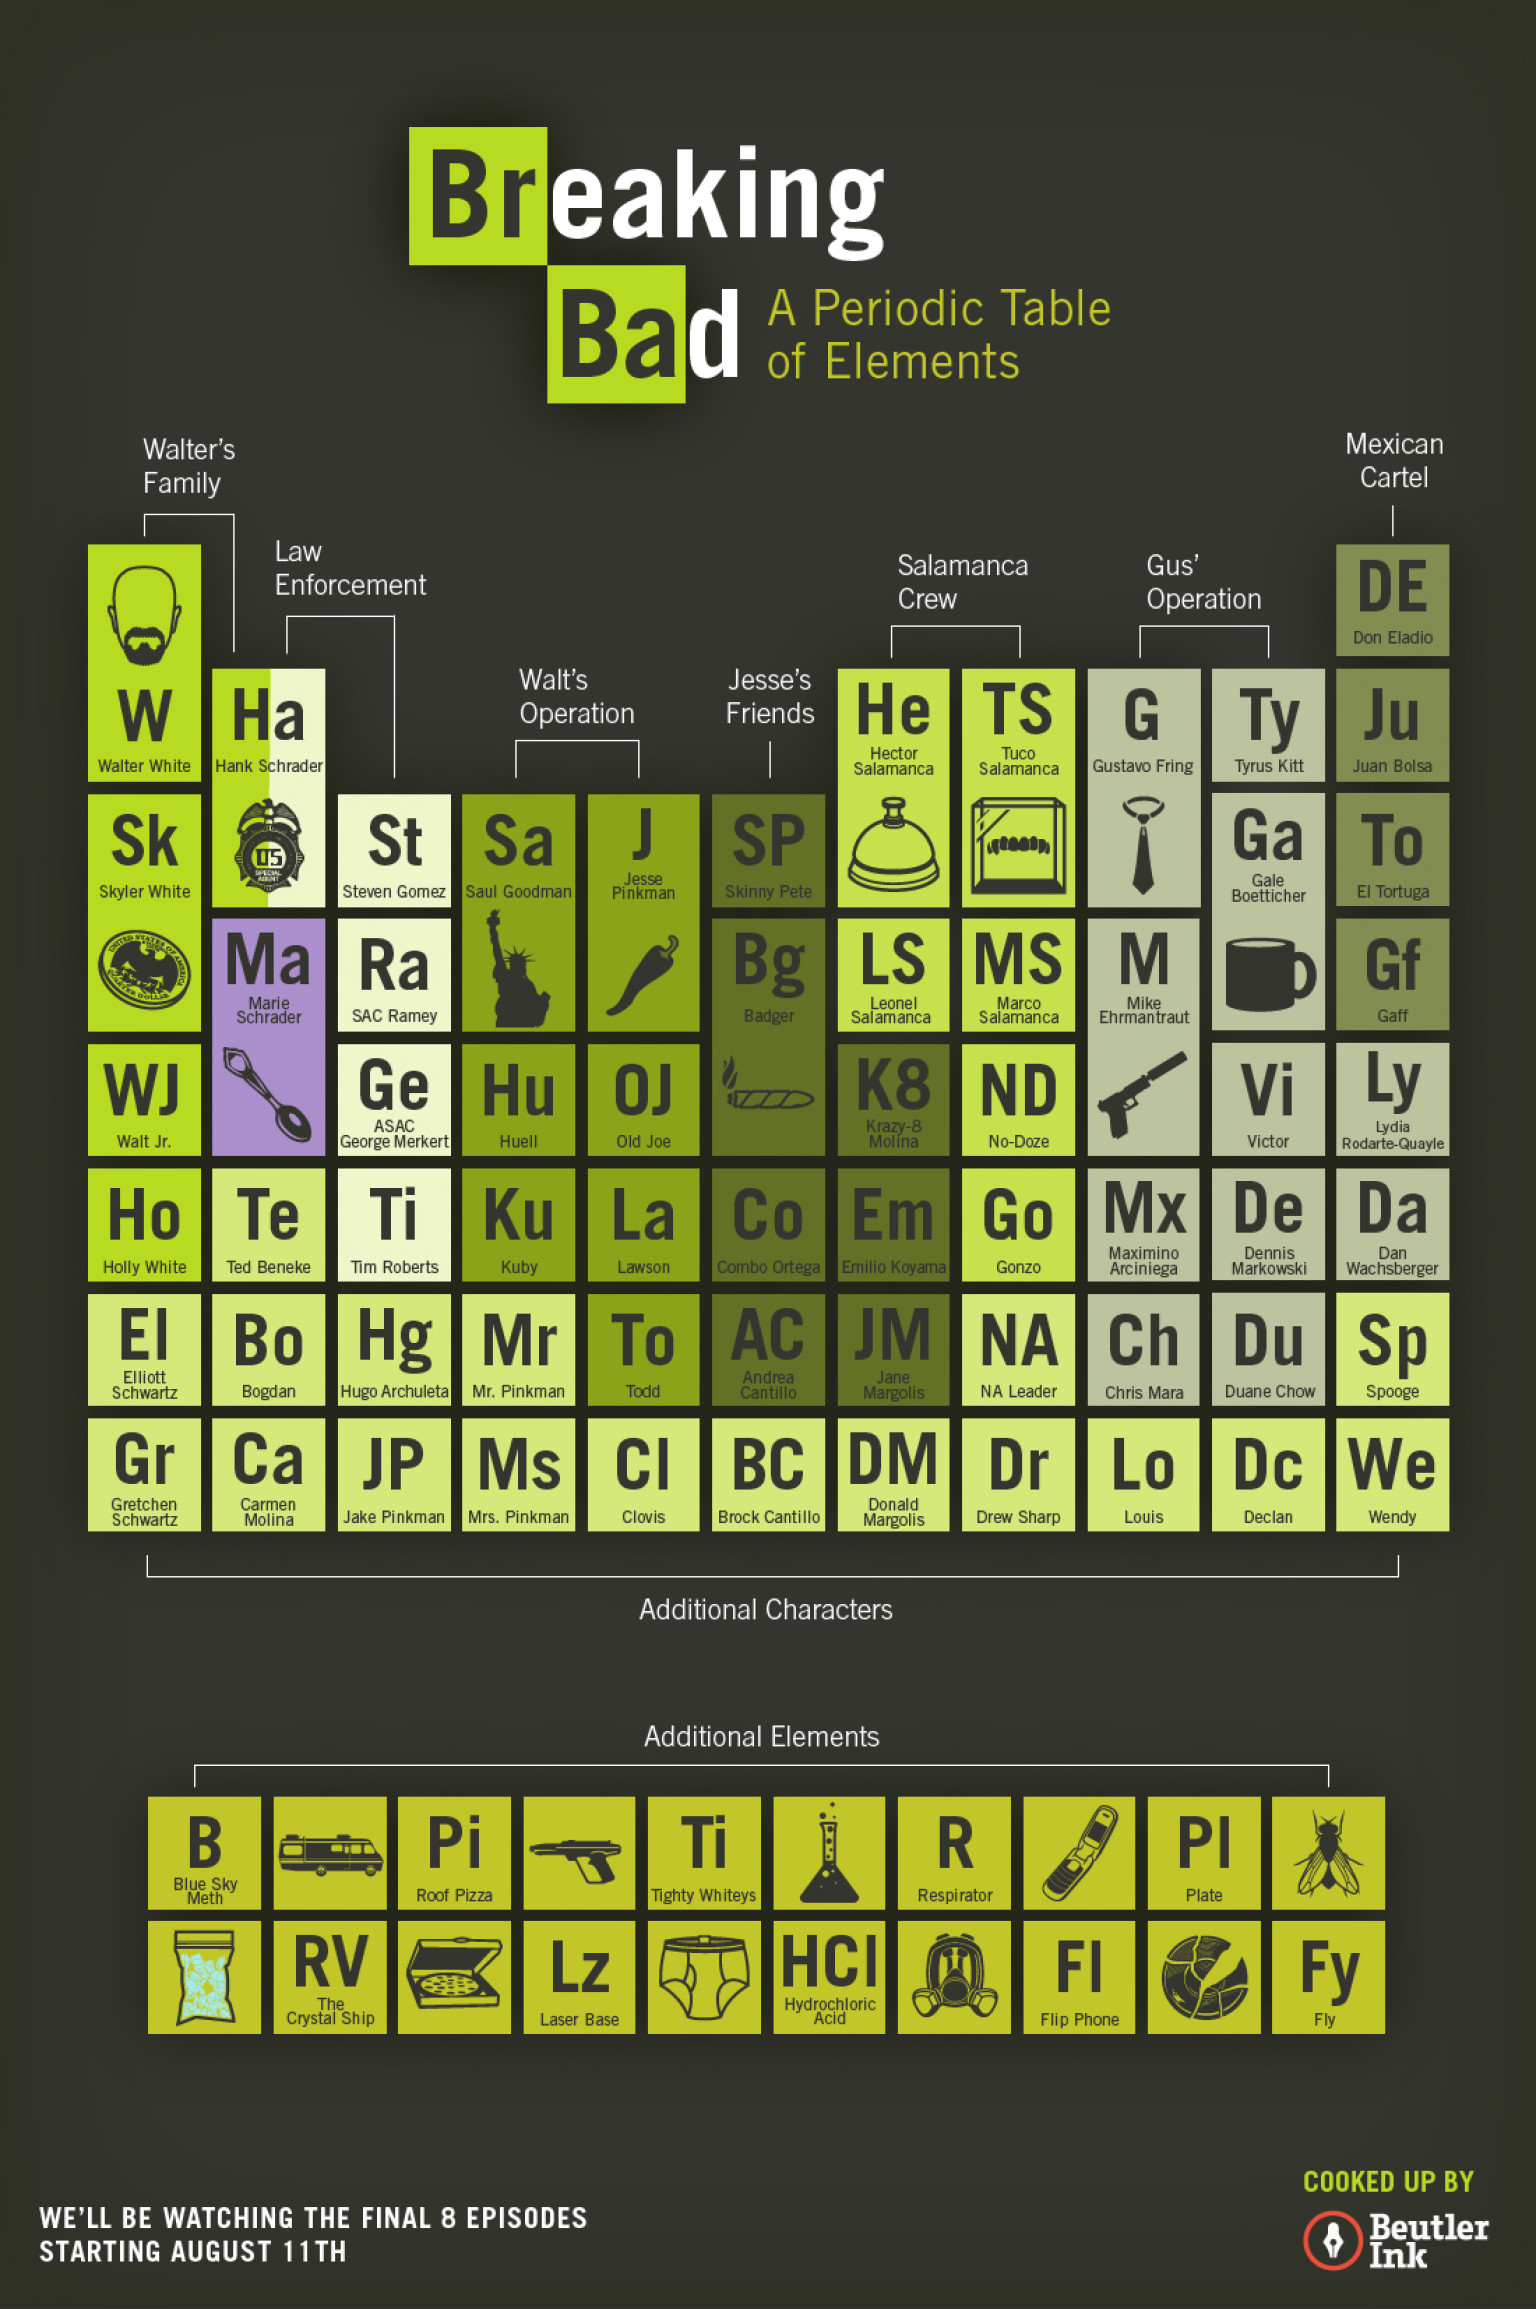 Breaking bad periodic table charting the elements of walt and breaking bad periodic table charting the elements of walt and jesses wonderful world of meth infographic huffpost urtaz Choice Image